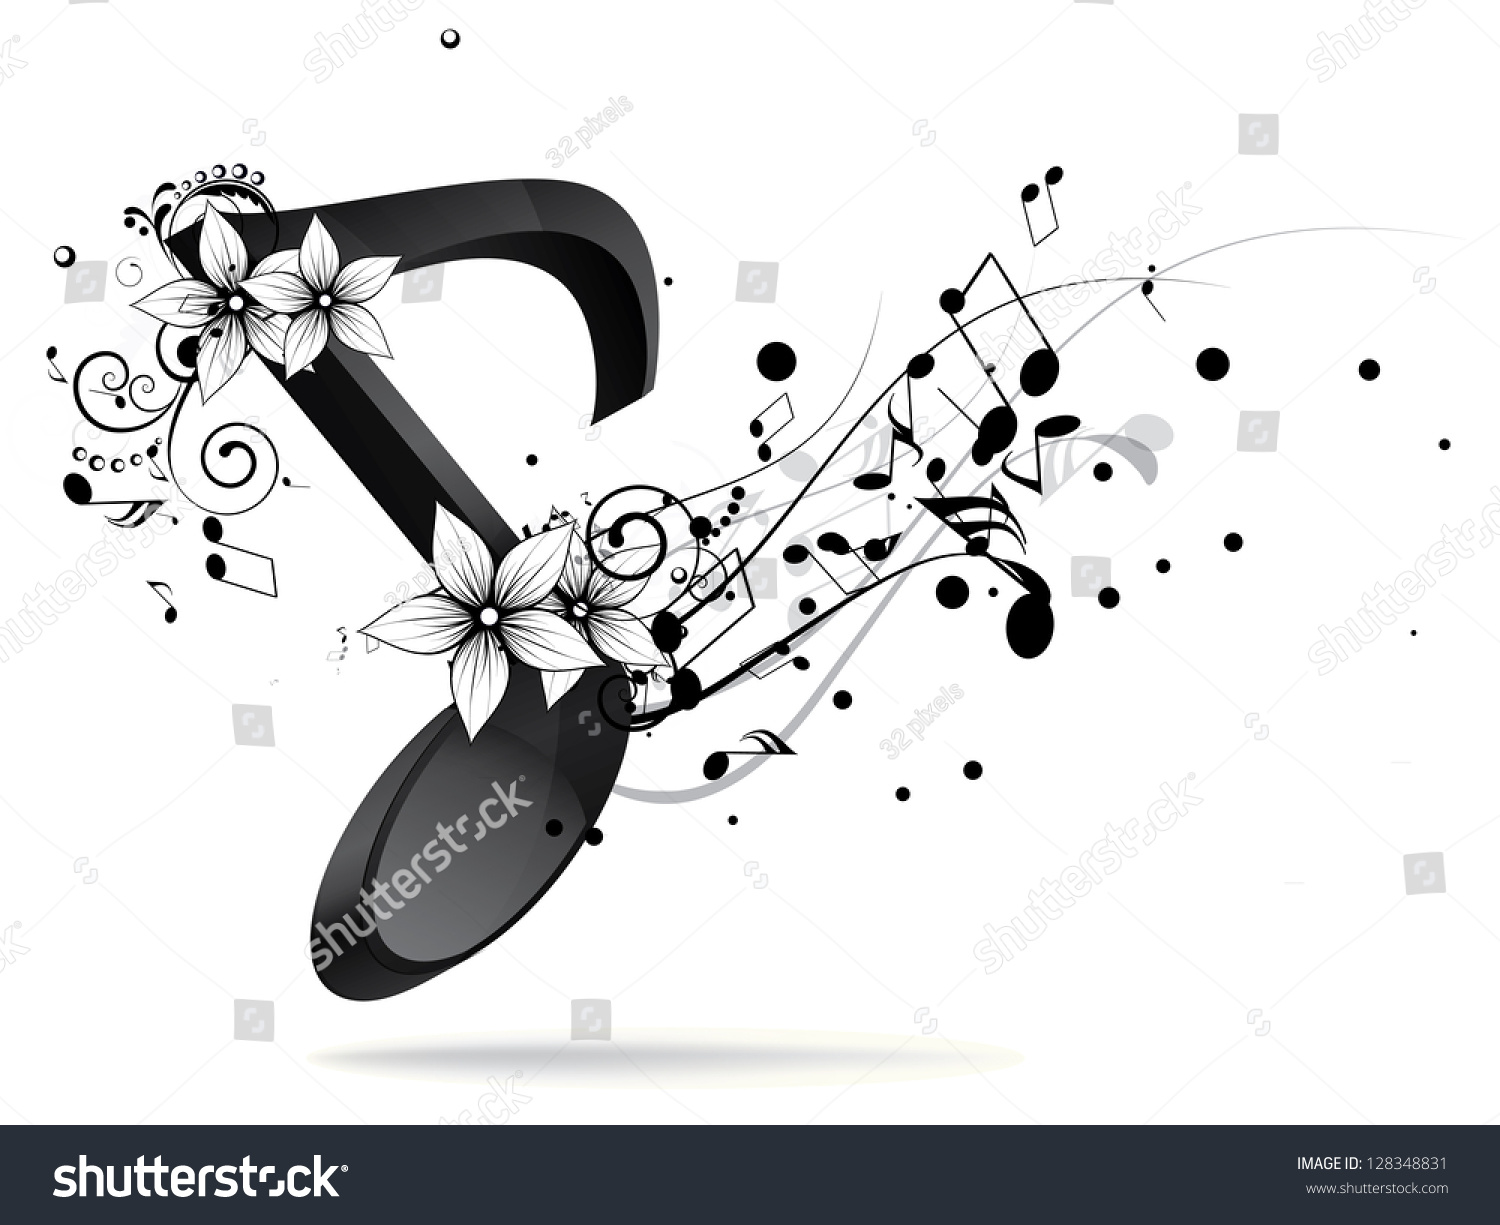 Abstract Design Background With Colorful Music Notes Stock ...